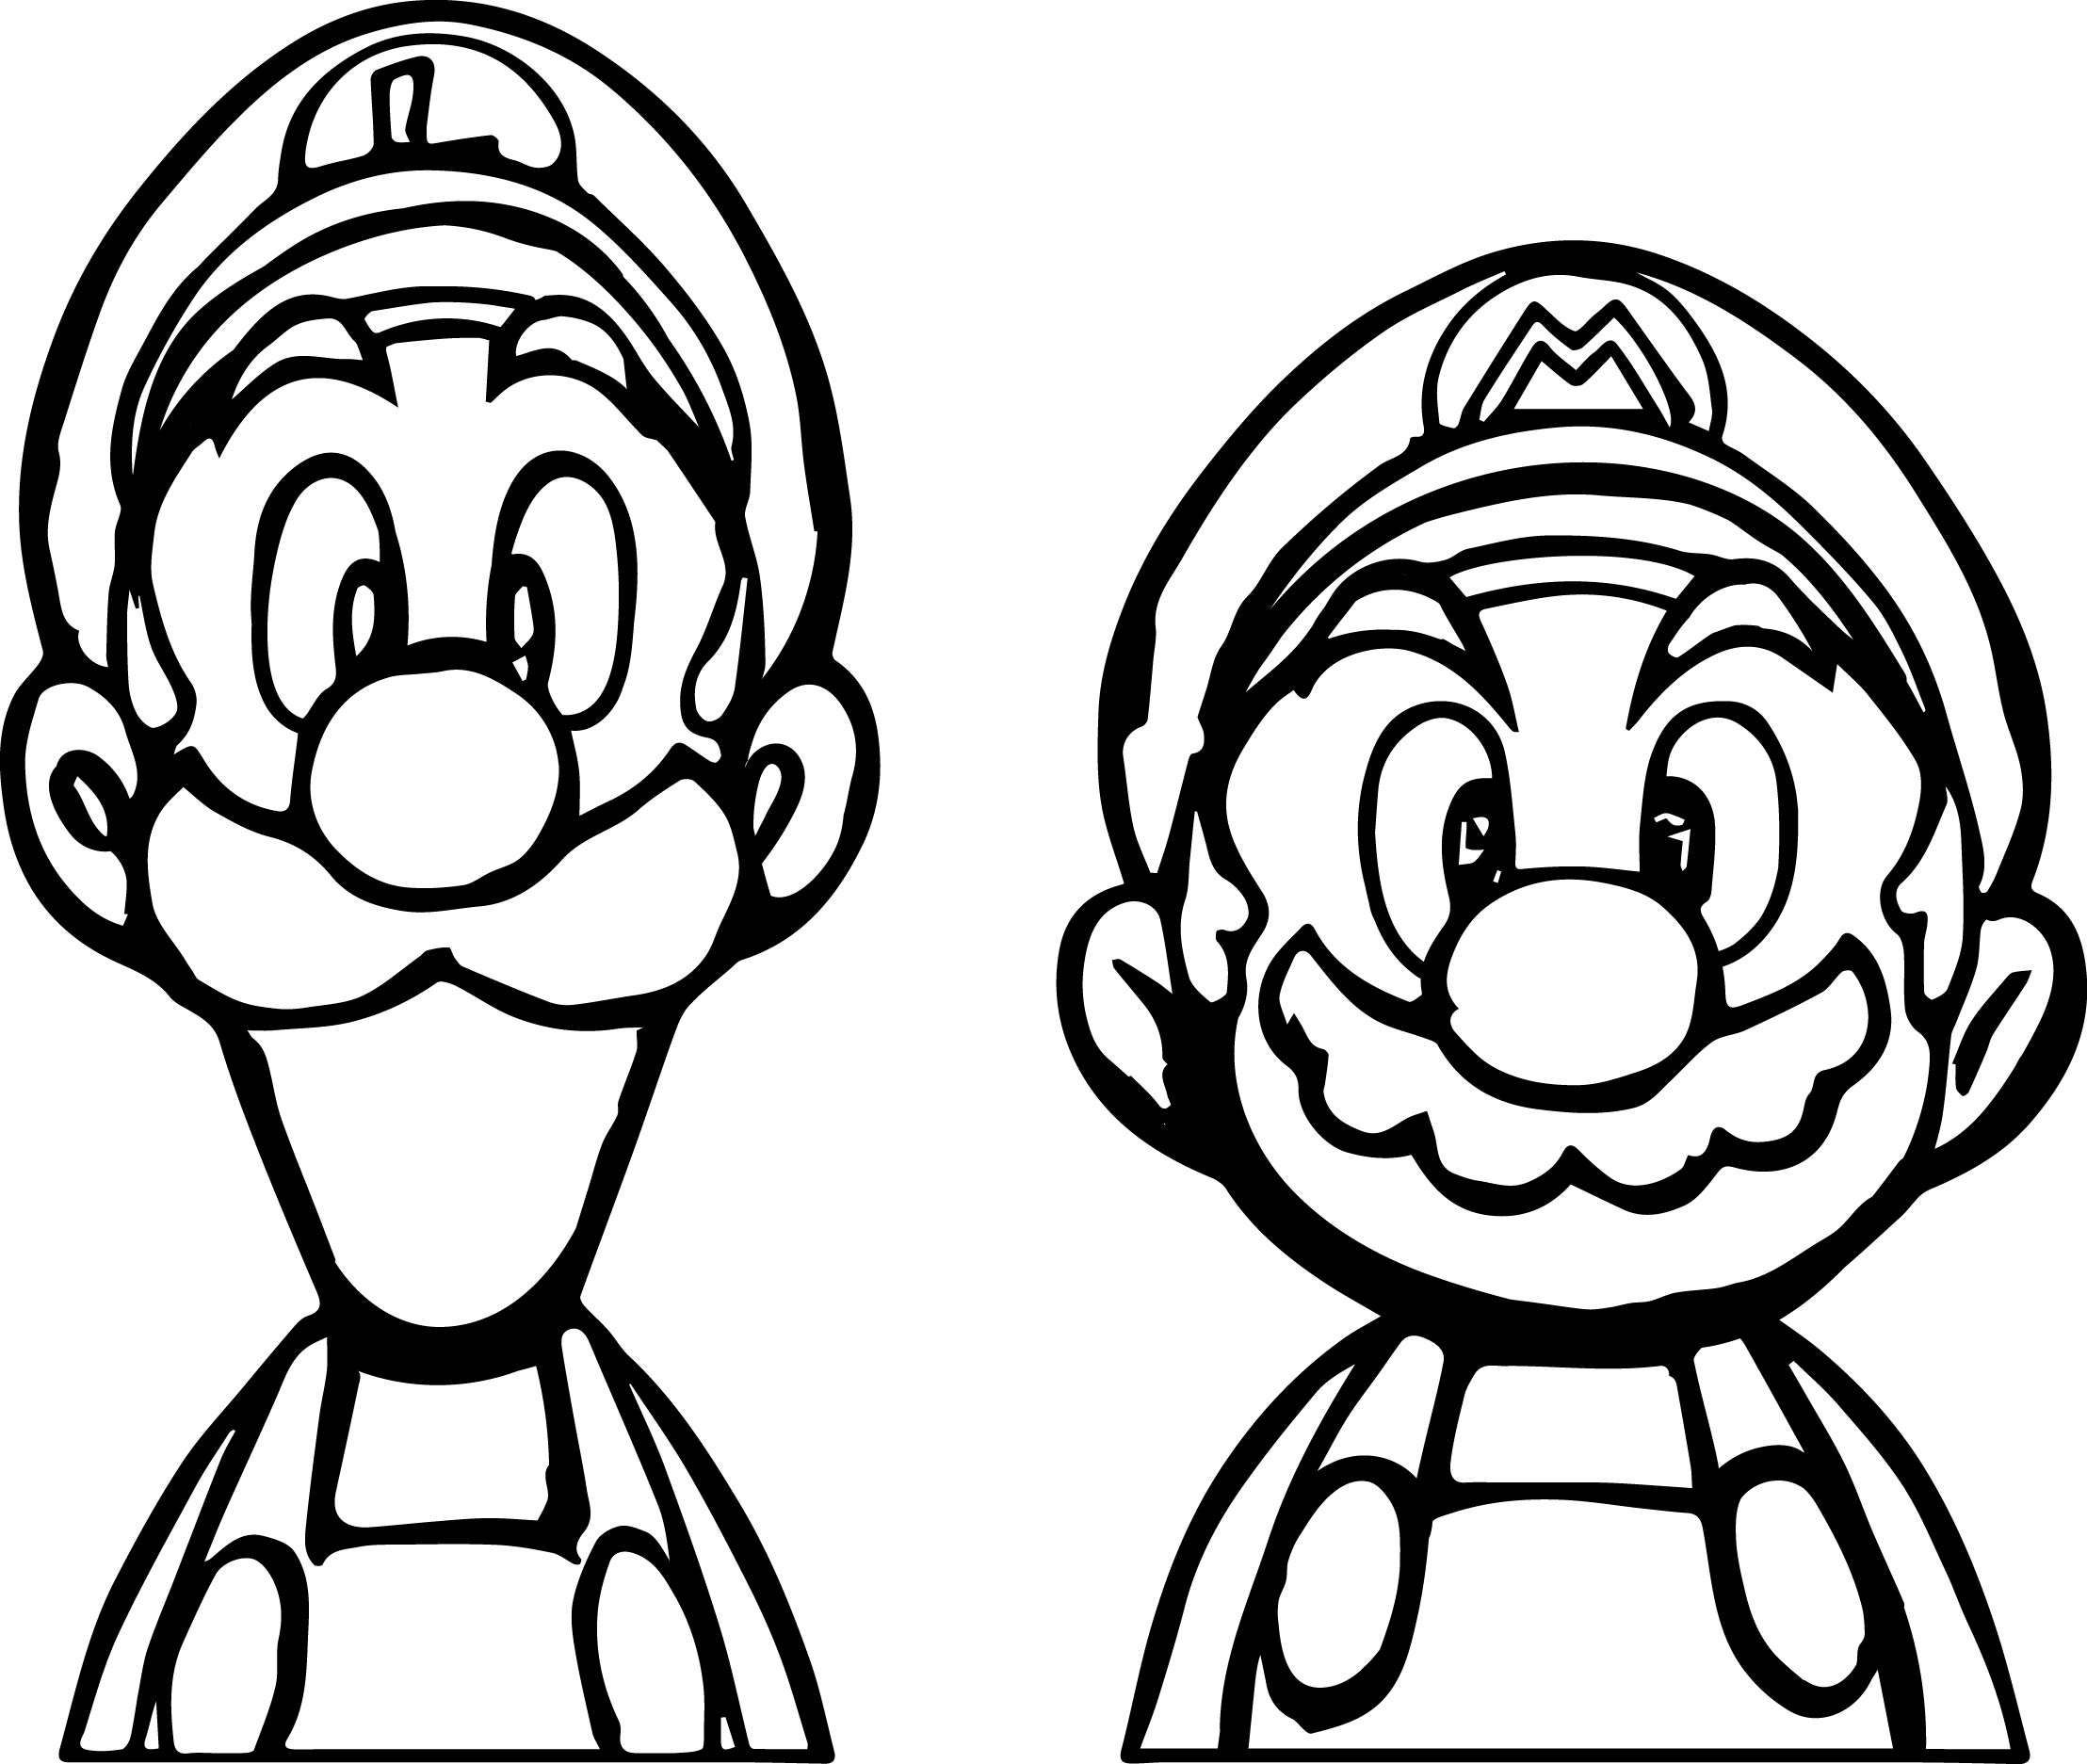 Super Mario Coloring Page Luxury Photos Mario Luigi Coloring Pages Here Is The Happy Meal Super Mario Coloring Pages Super Mario Coloring Pages Coloring Pages